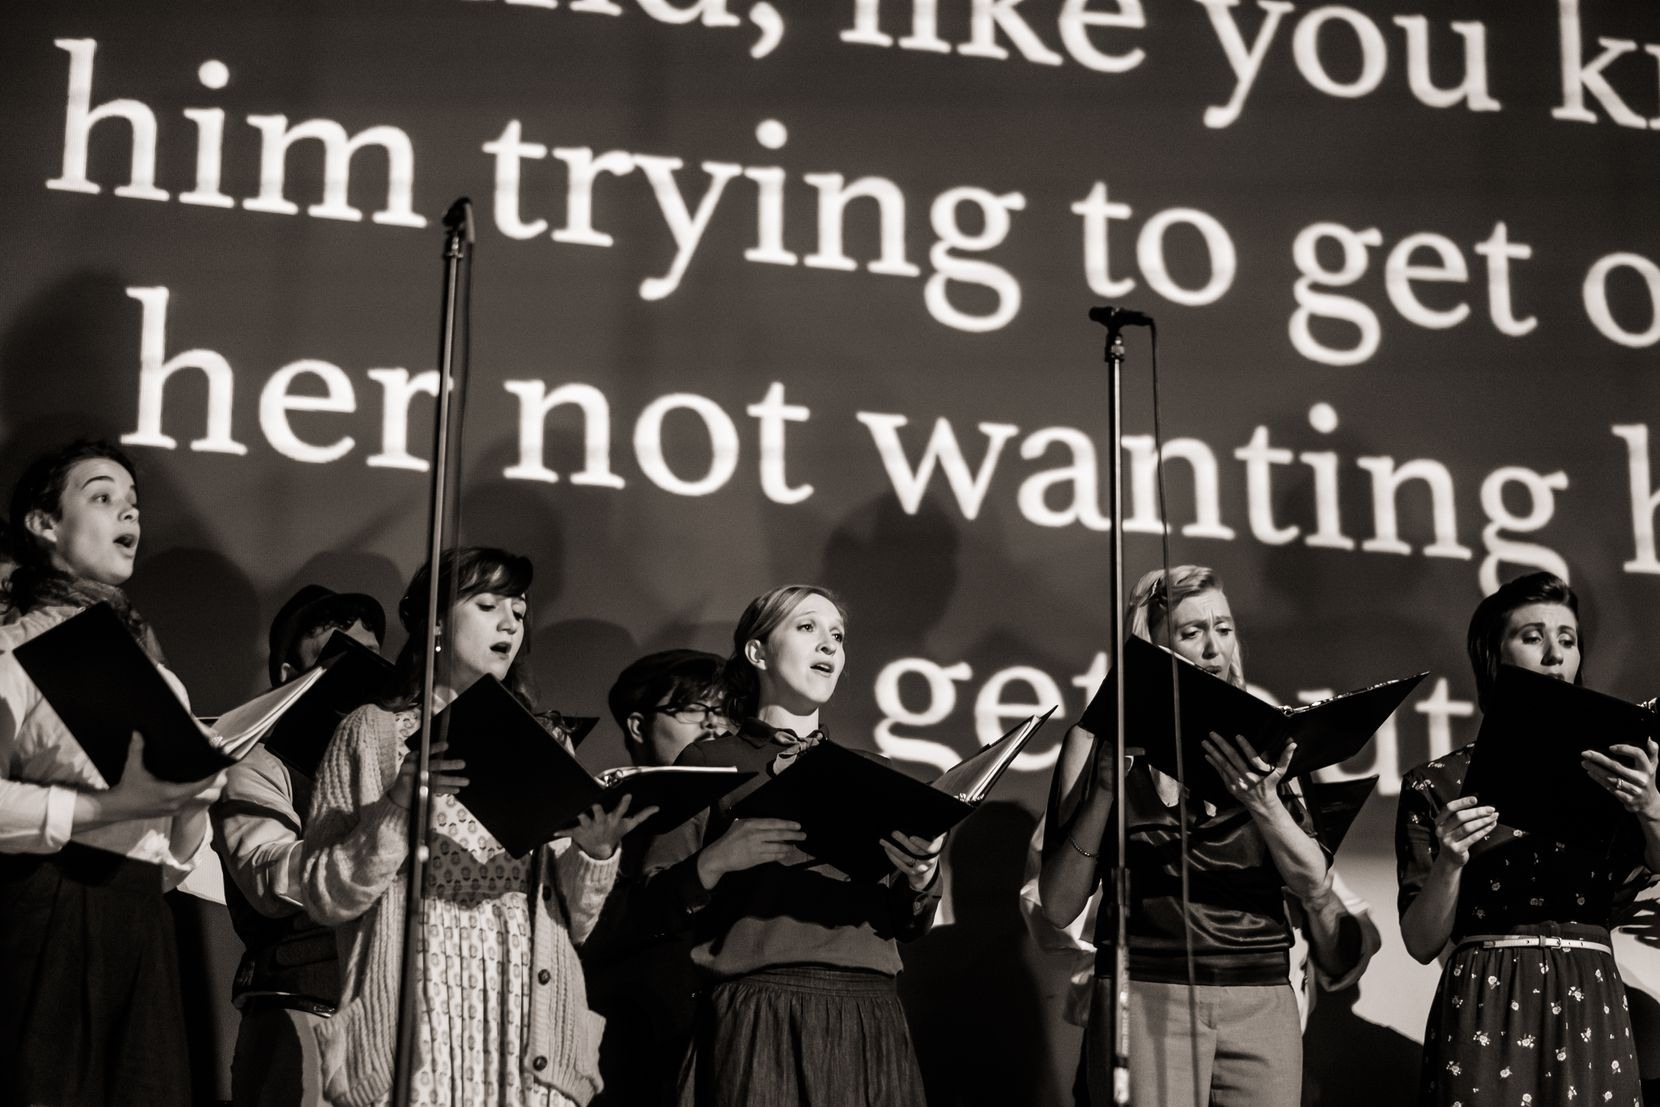 """Dallas-based Verdigris Ensemble is creating a blockchain art version of their production of """"Betty's Notebook,"""" shown here in photos from performance at the Texas Theatre in Oak Cliff, which uses music and found sounds to tell a story about the disappearance of American aviator Amelia Earhart."""